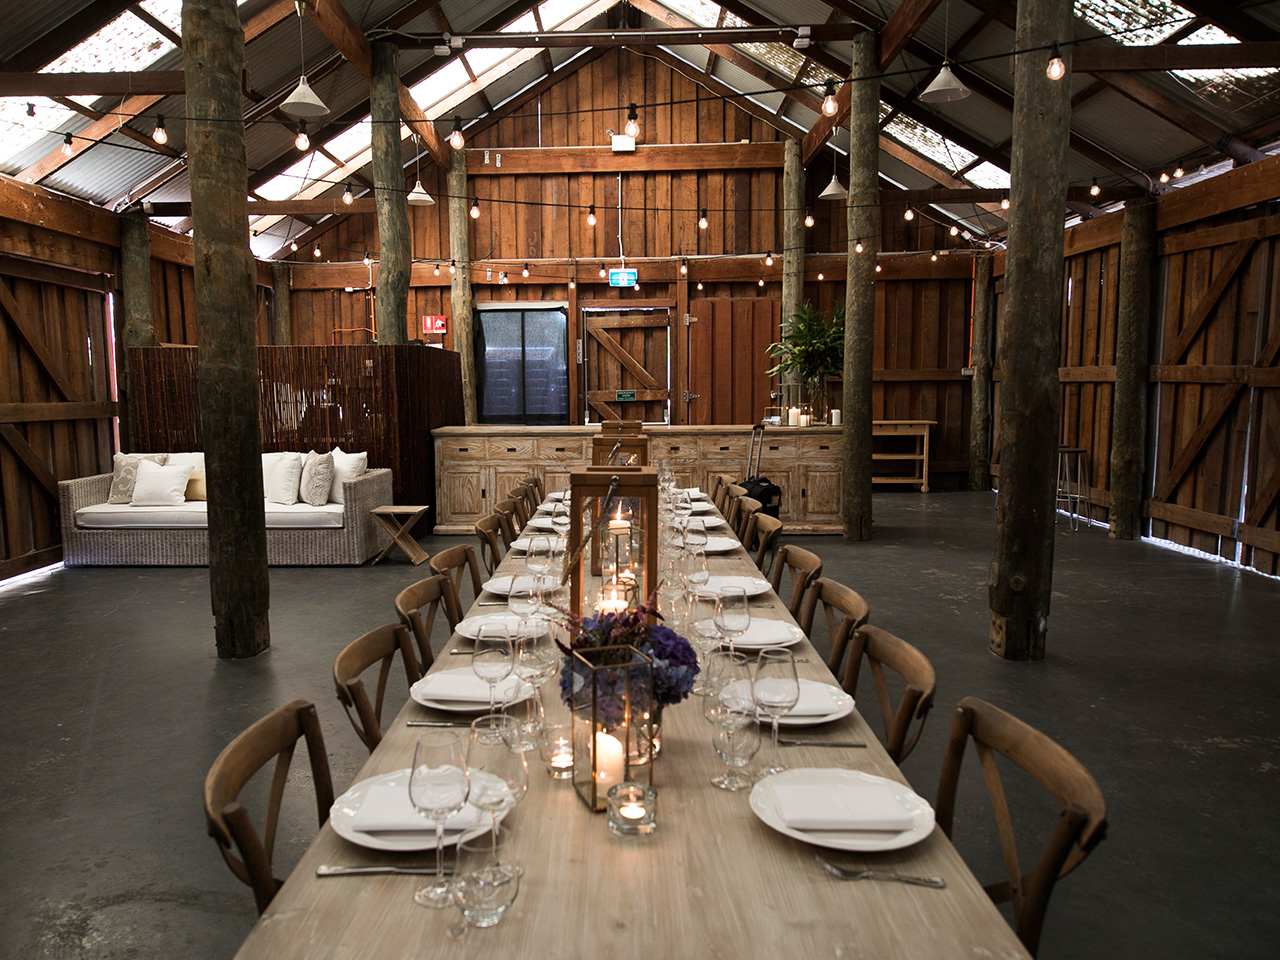 Chairs And A Long Table Setup Inside The Barn With A Couch And A Rectangular Cabinet Behind